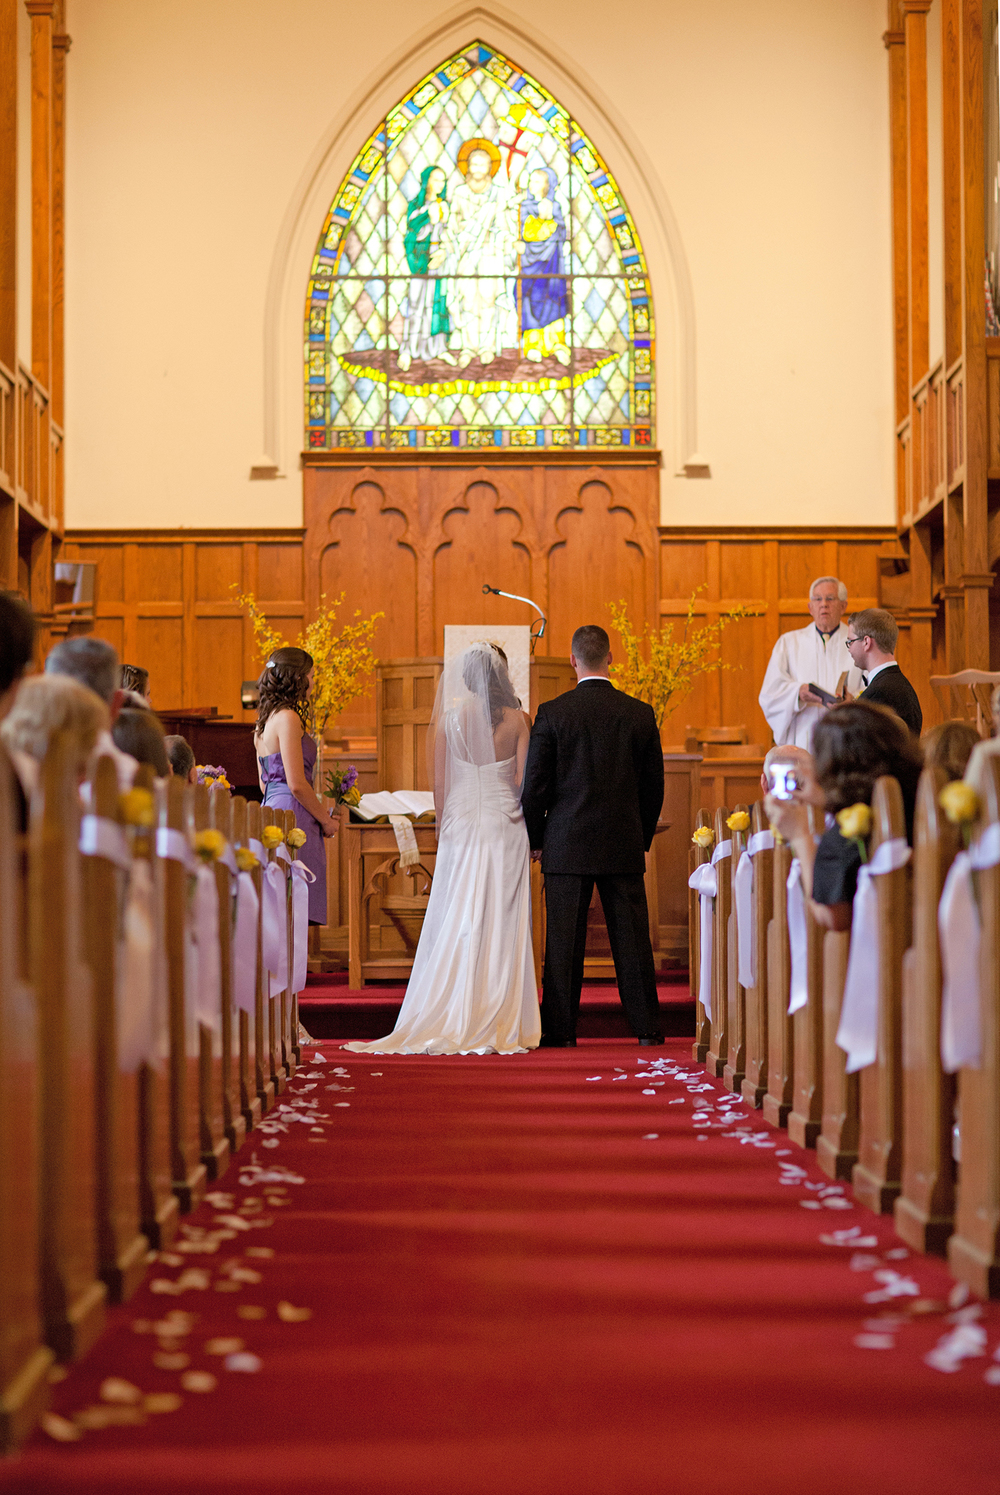 A Wedding Ceremony at Fairmont United Methodist Church